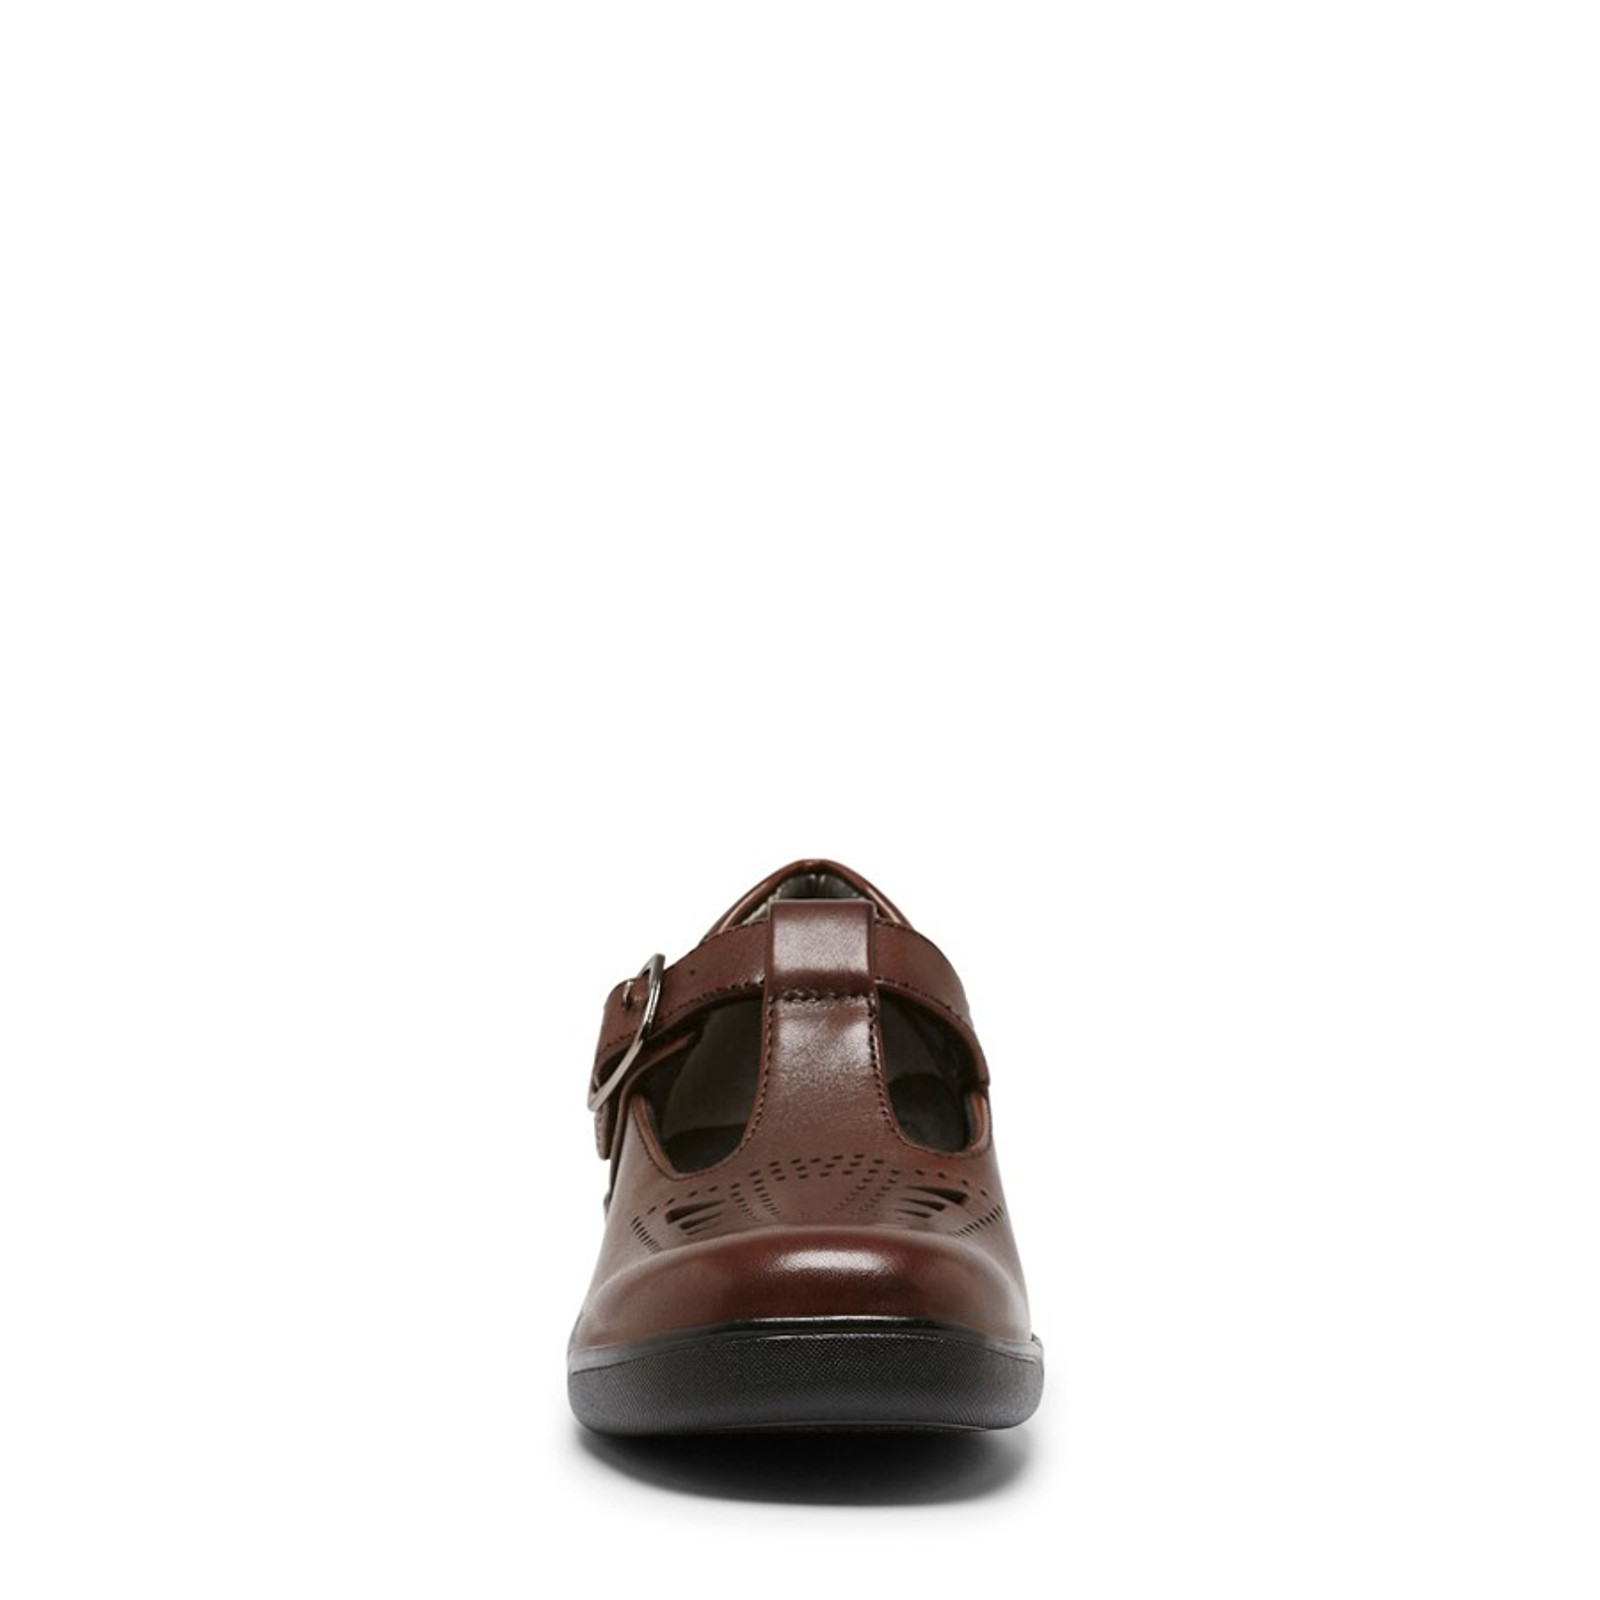 Clarks Girls PUPIL Brown